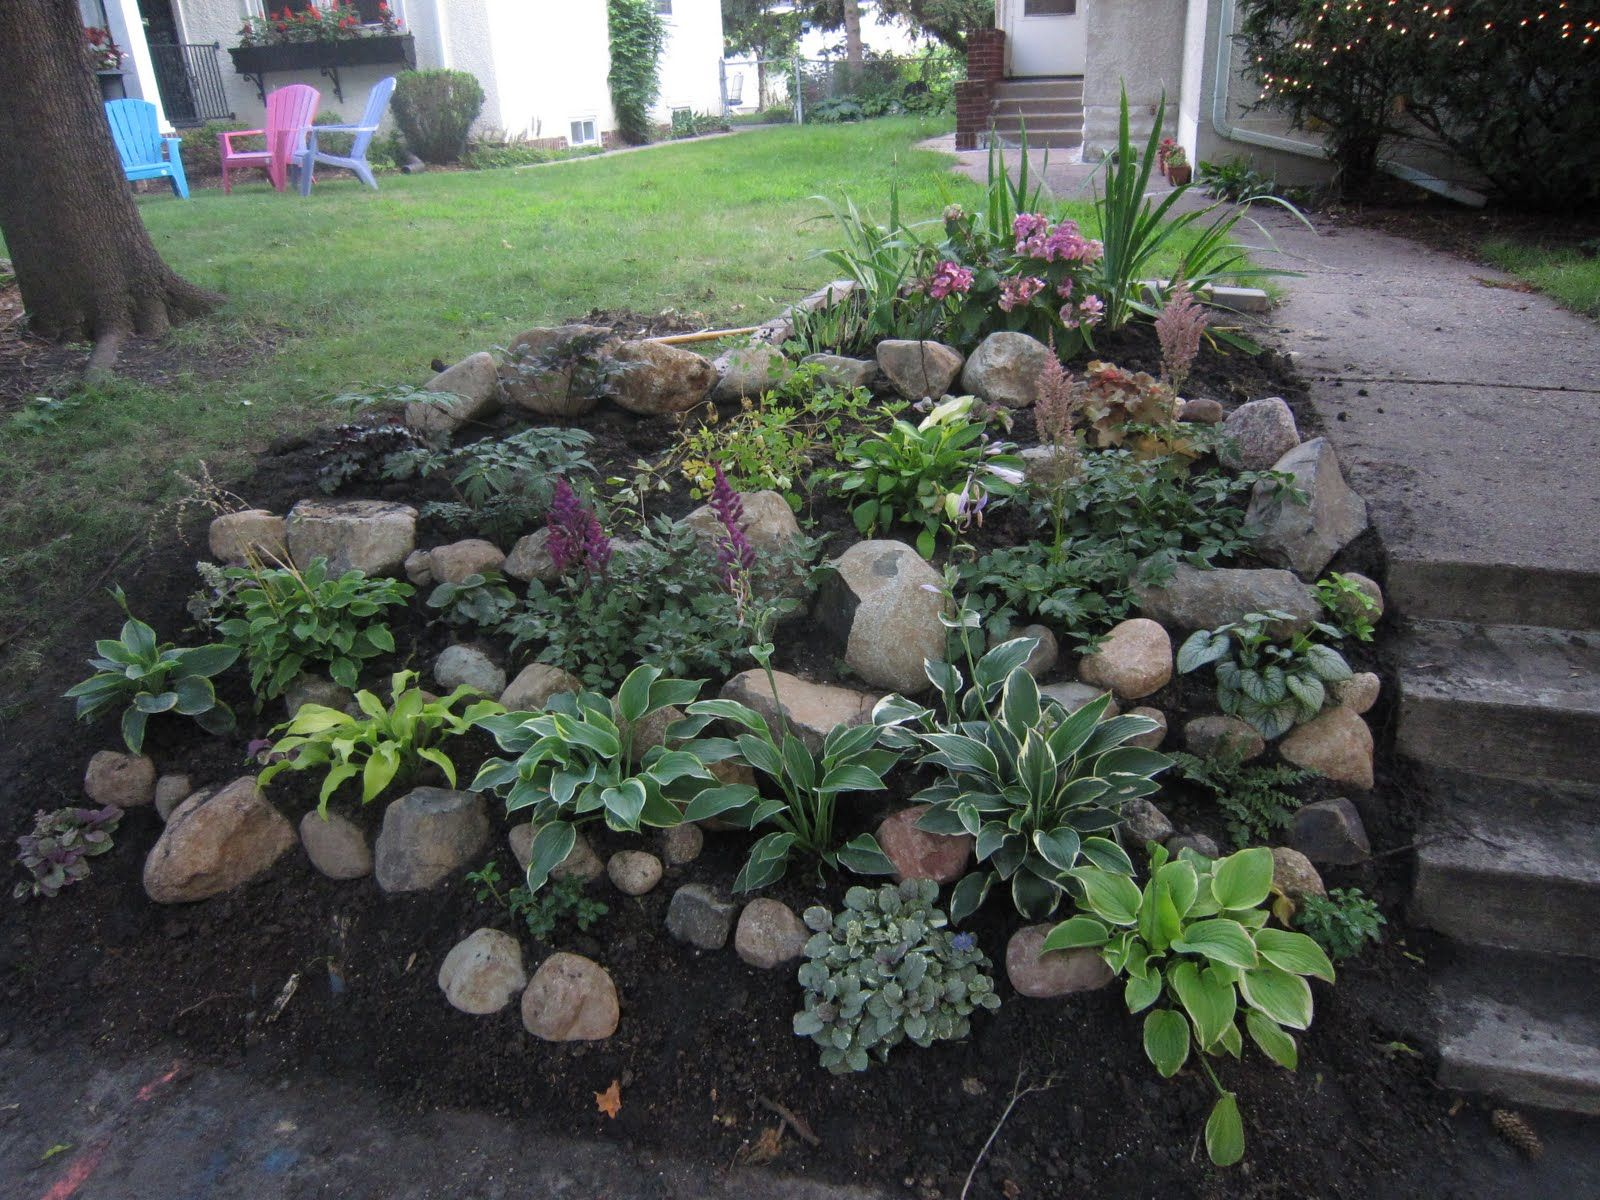 Landscaping Ideas for Small Slopes Finally a double rainbow while